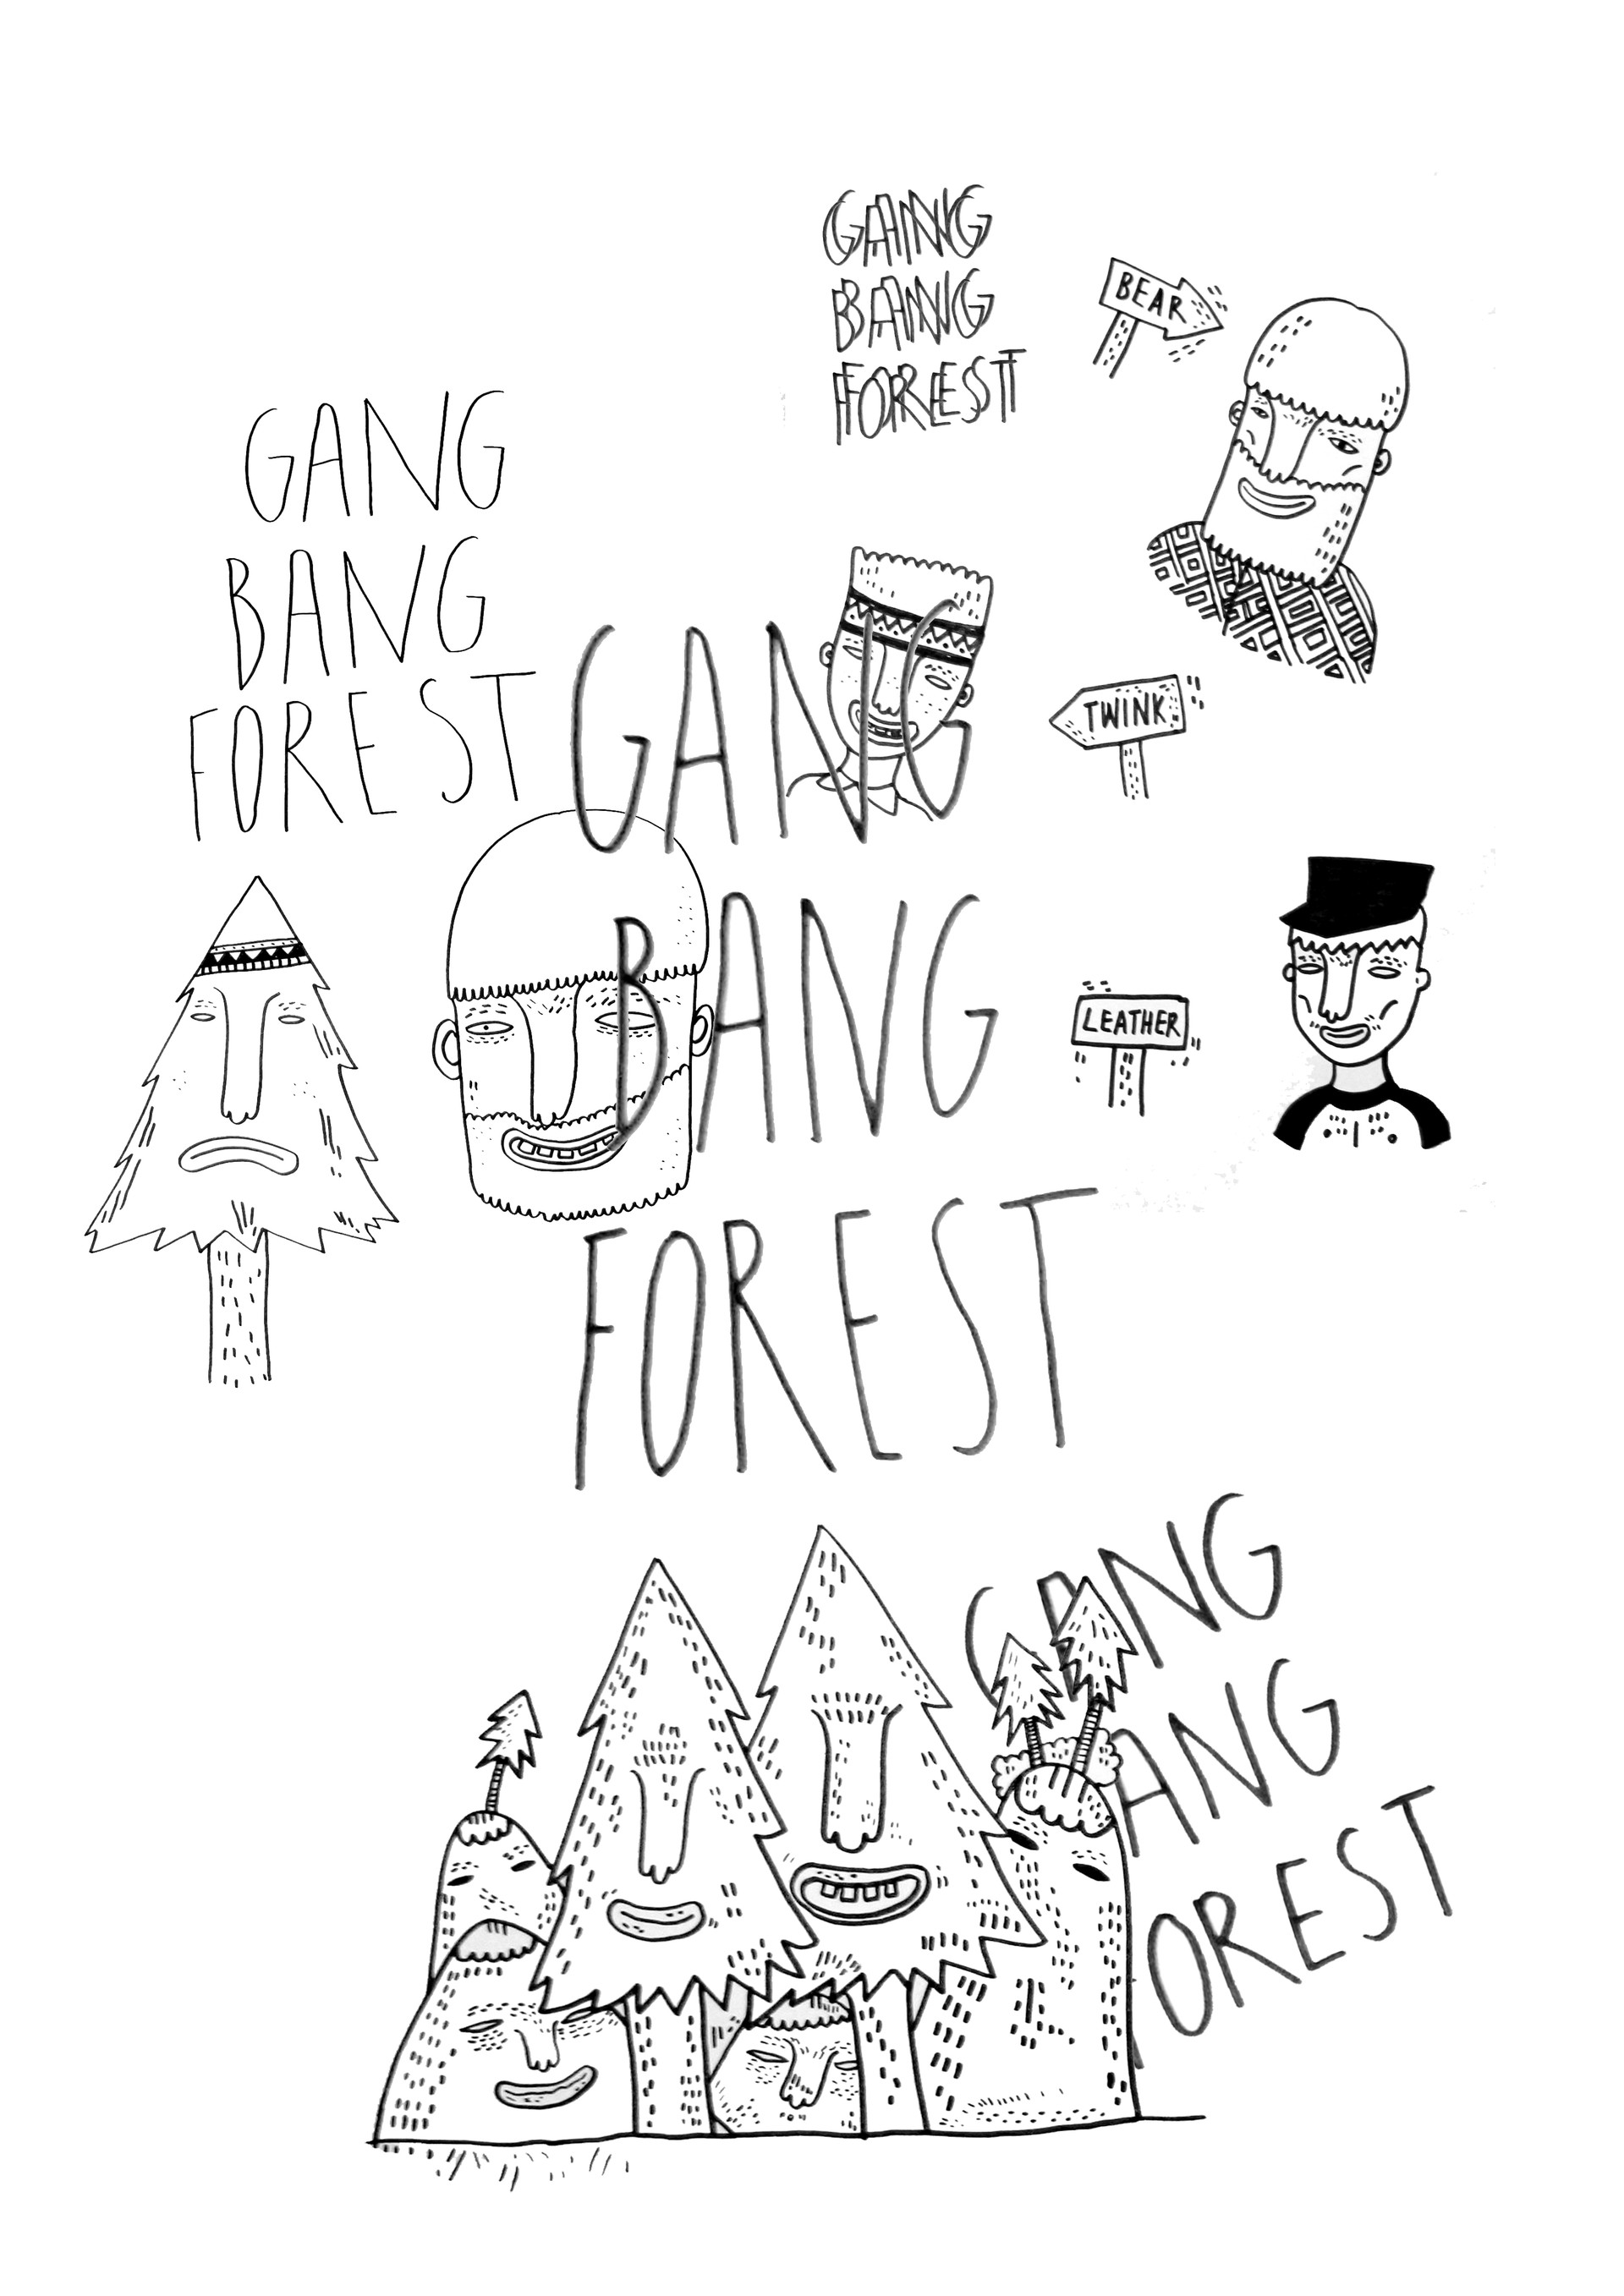 GANG BANG FOREST